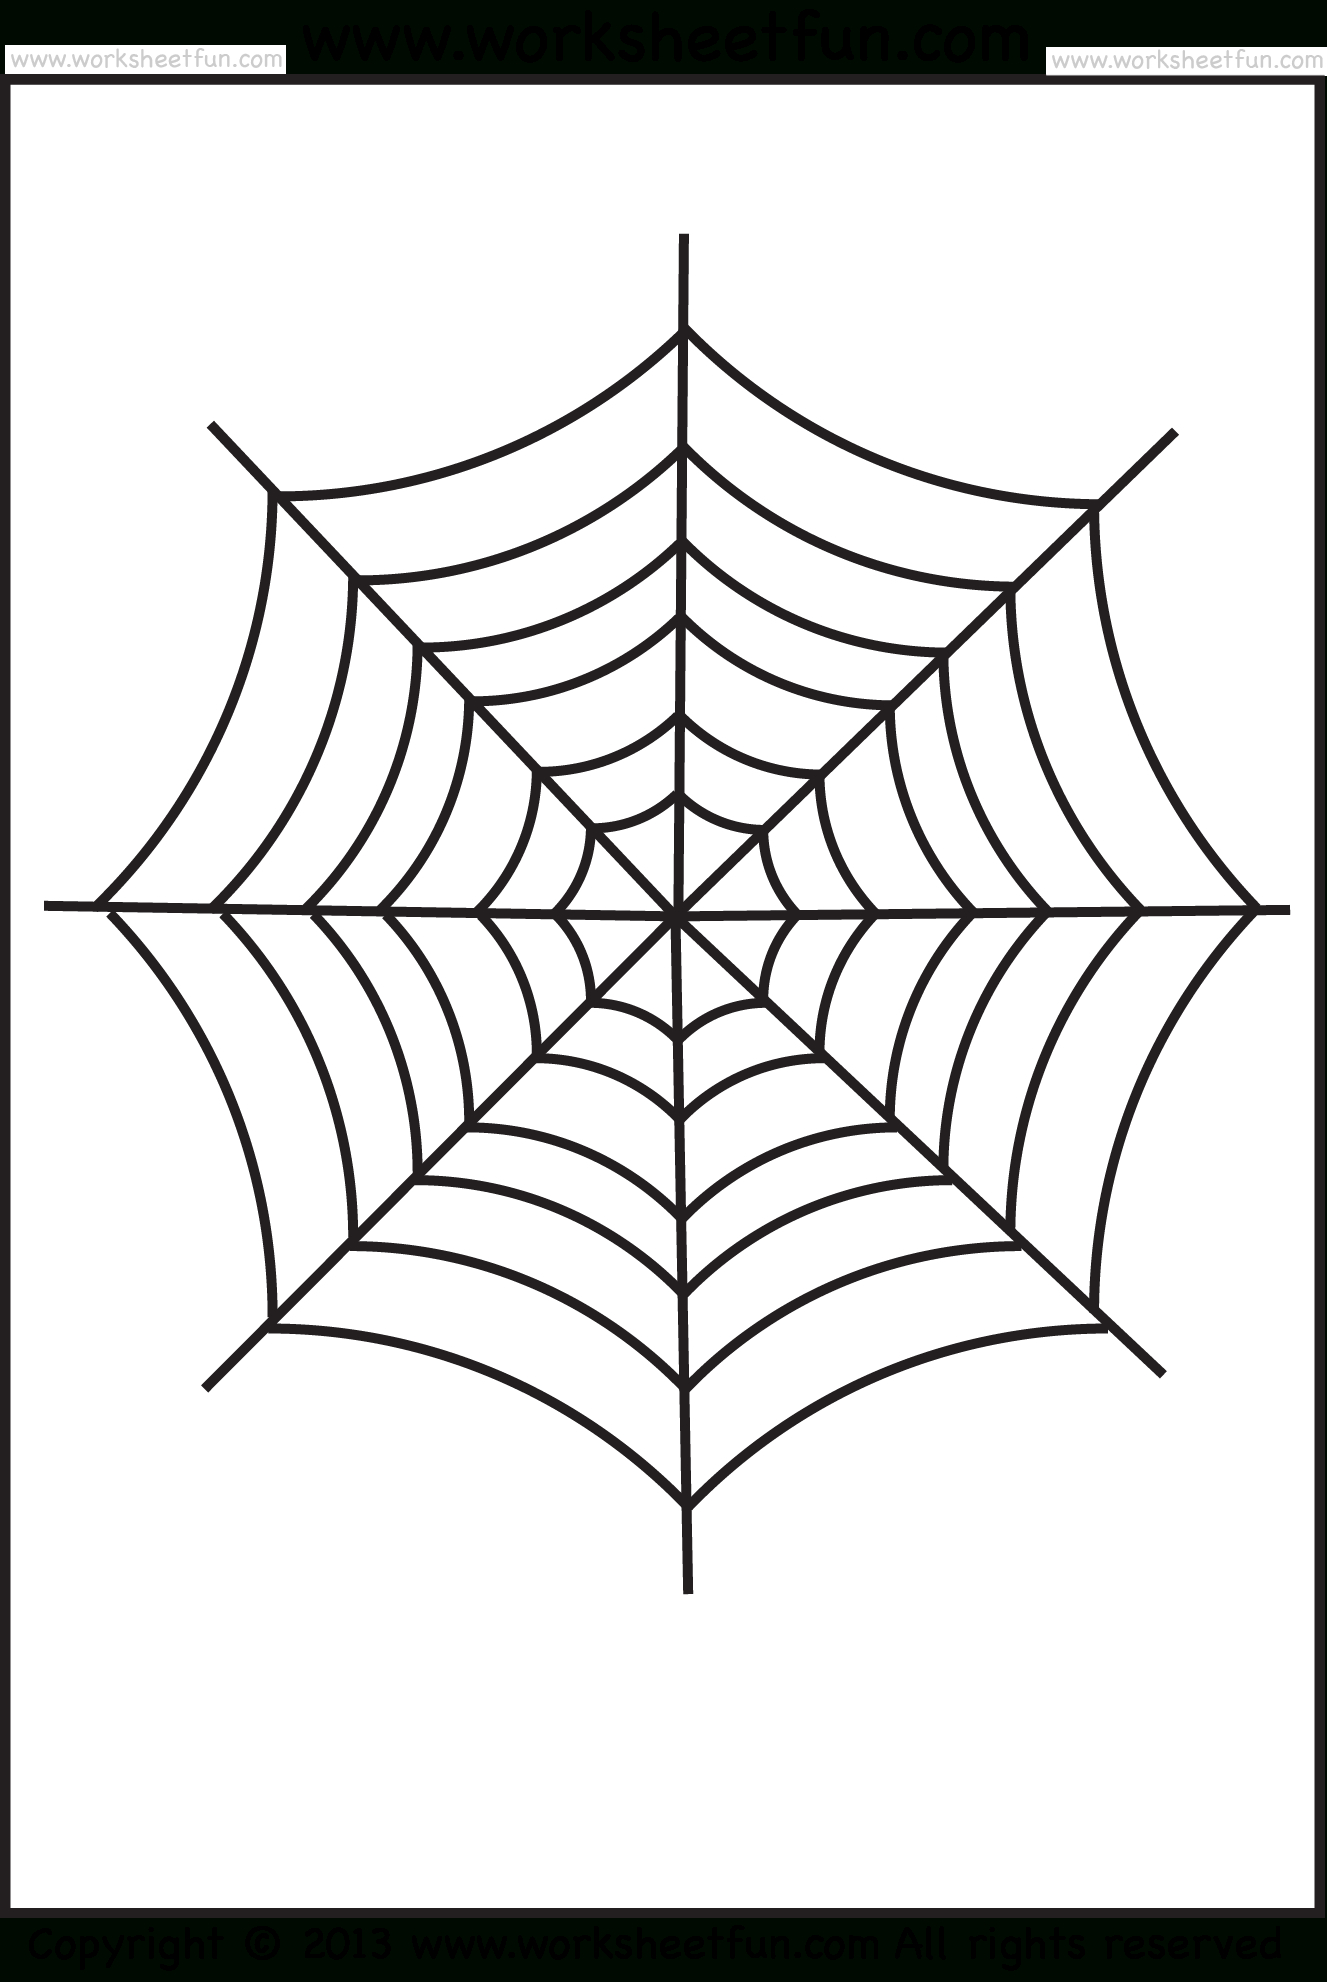 Spider Web Tracing – One Halloween Worksheets / Free Printable - Free Printable Spider Web